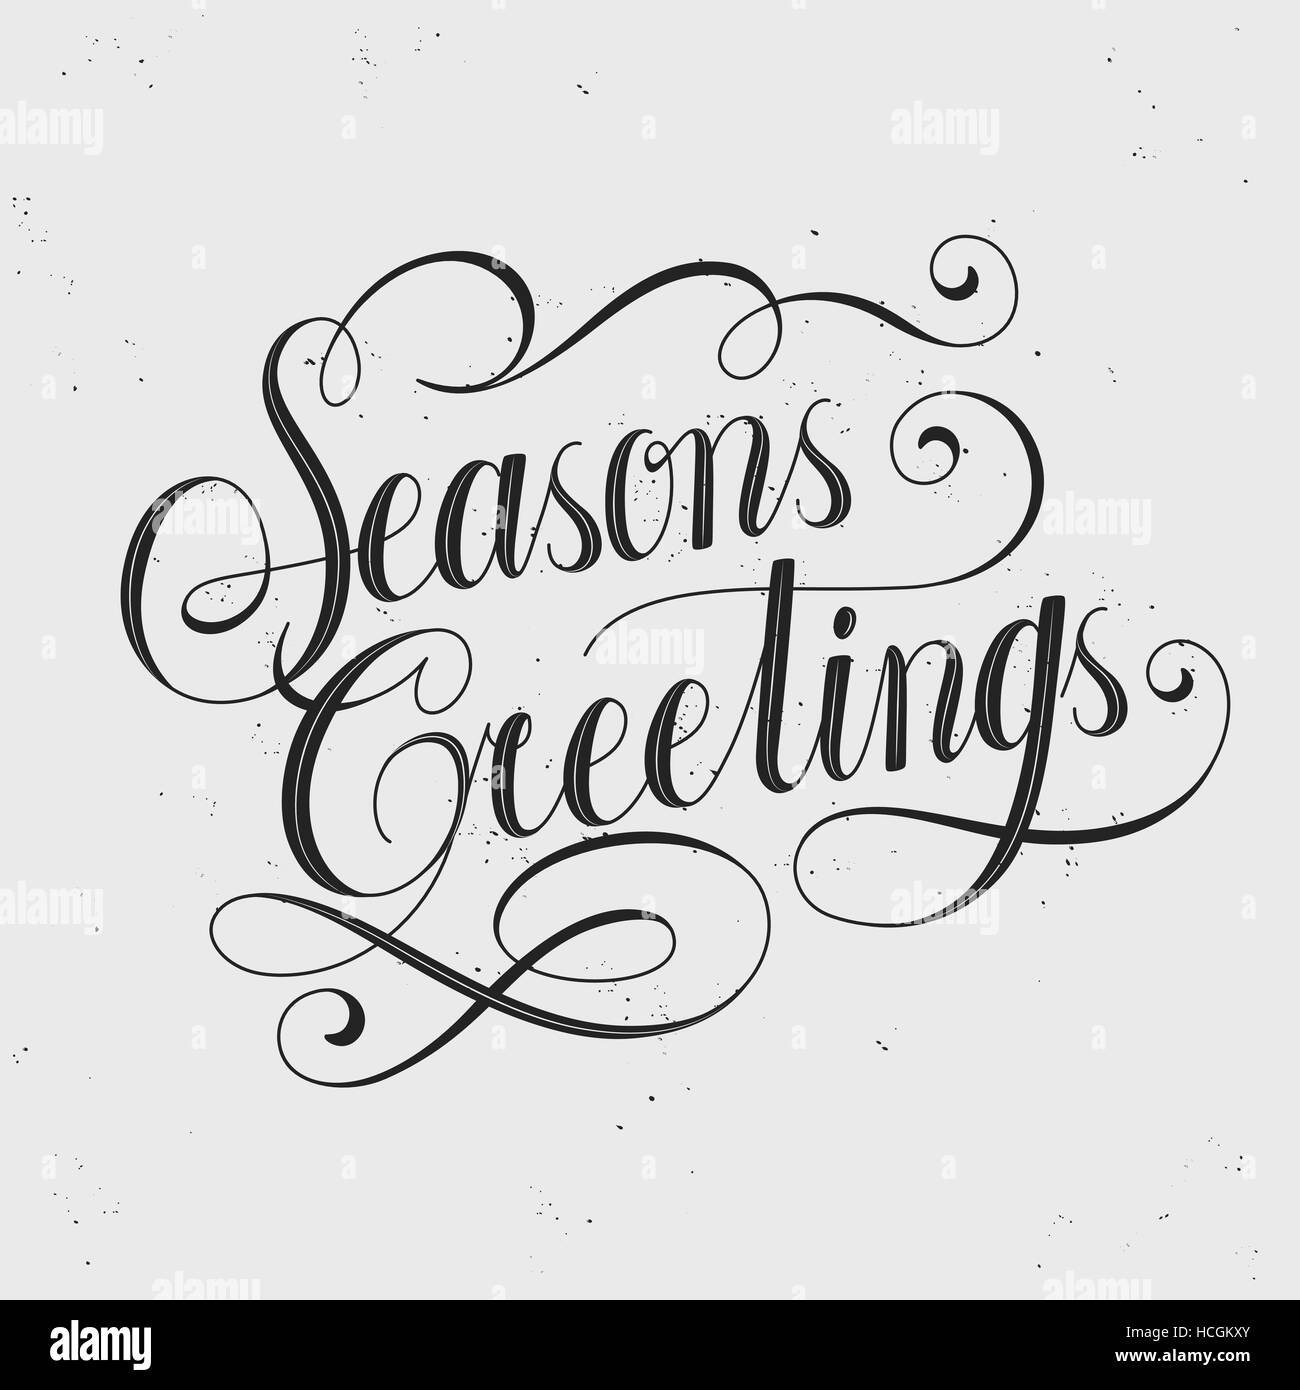 Retro seasons greetings calligraphy with decorative line stock retro seasons greetings calligraphy with decorative line m4hsunfo